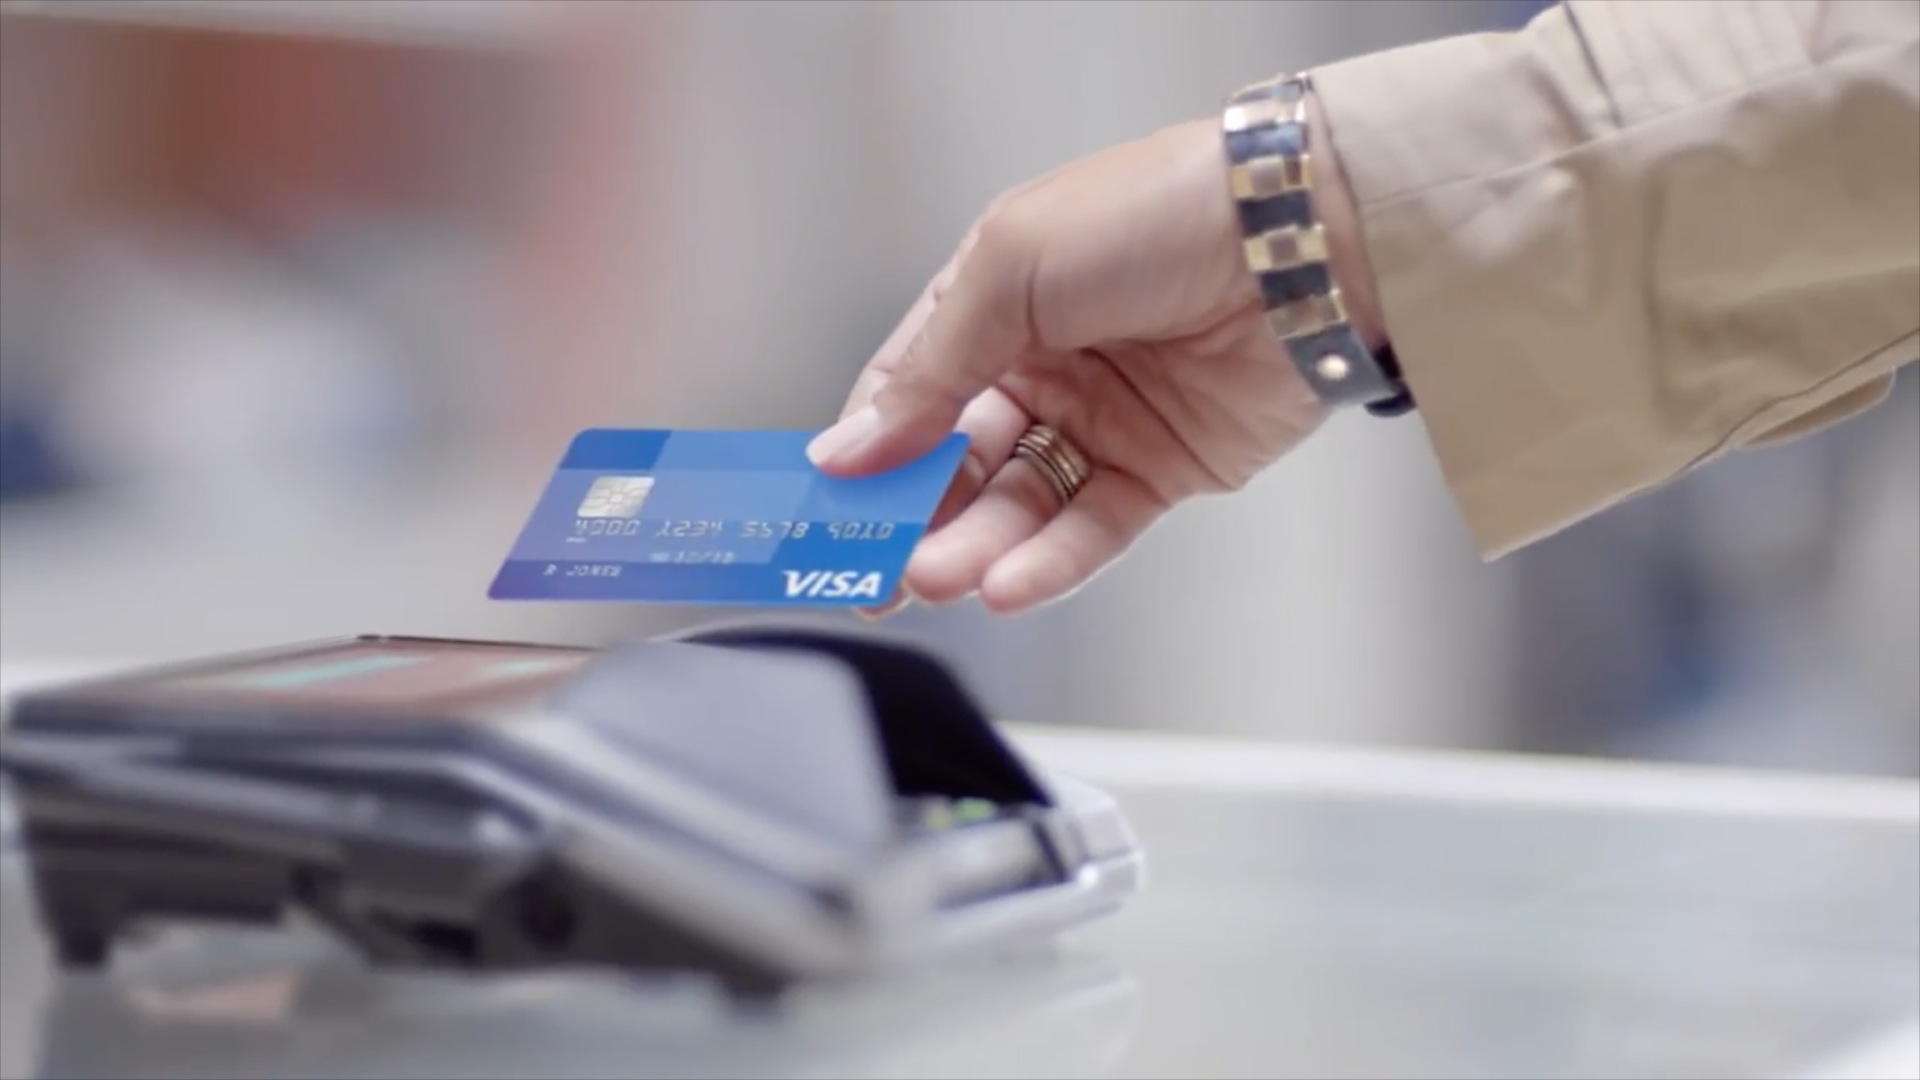 Visa Chip Technology – It's Here To Stay